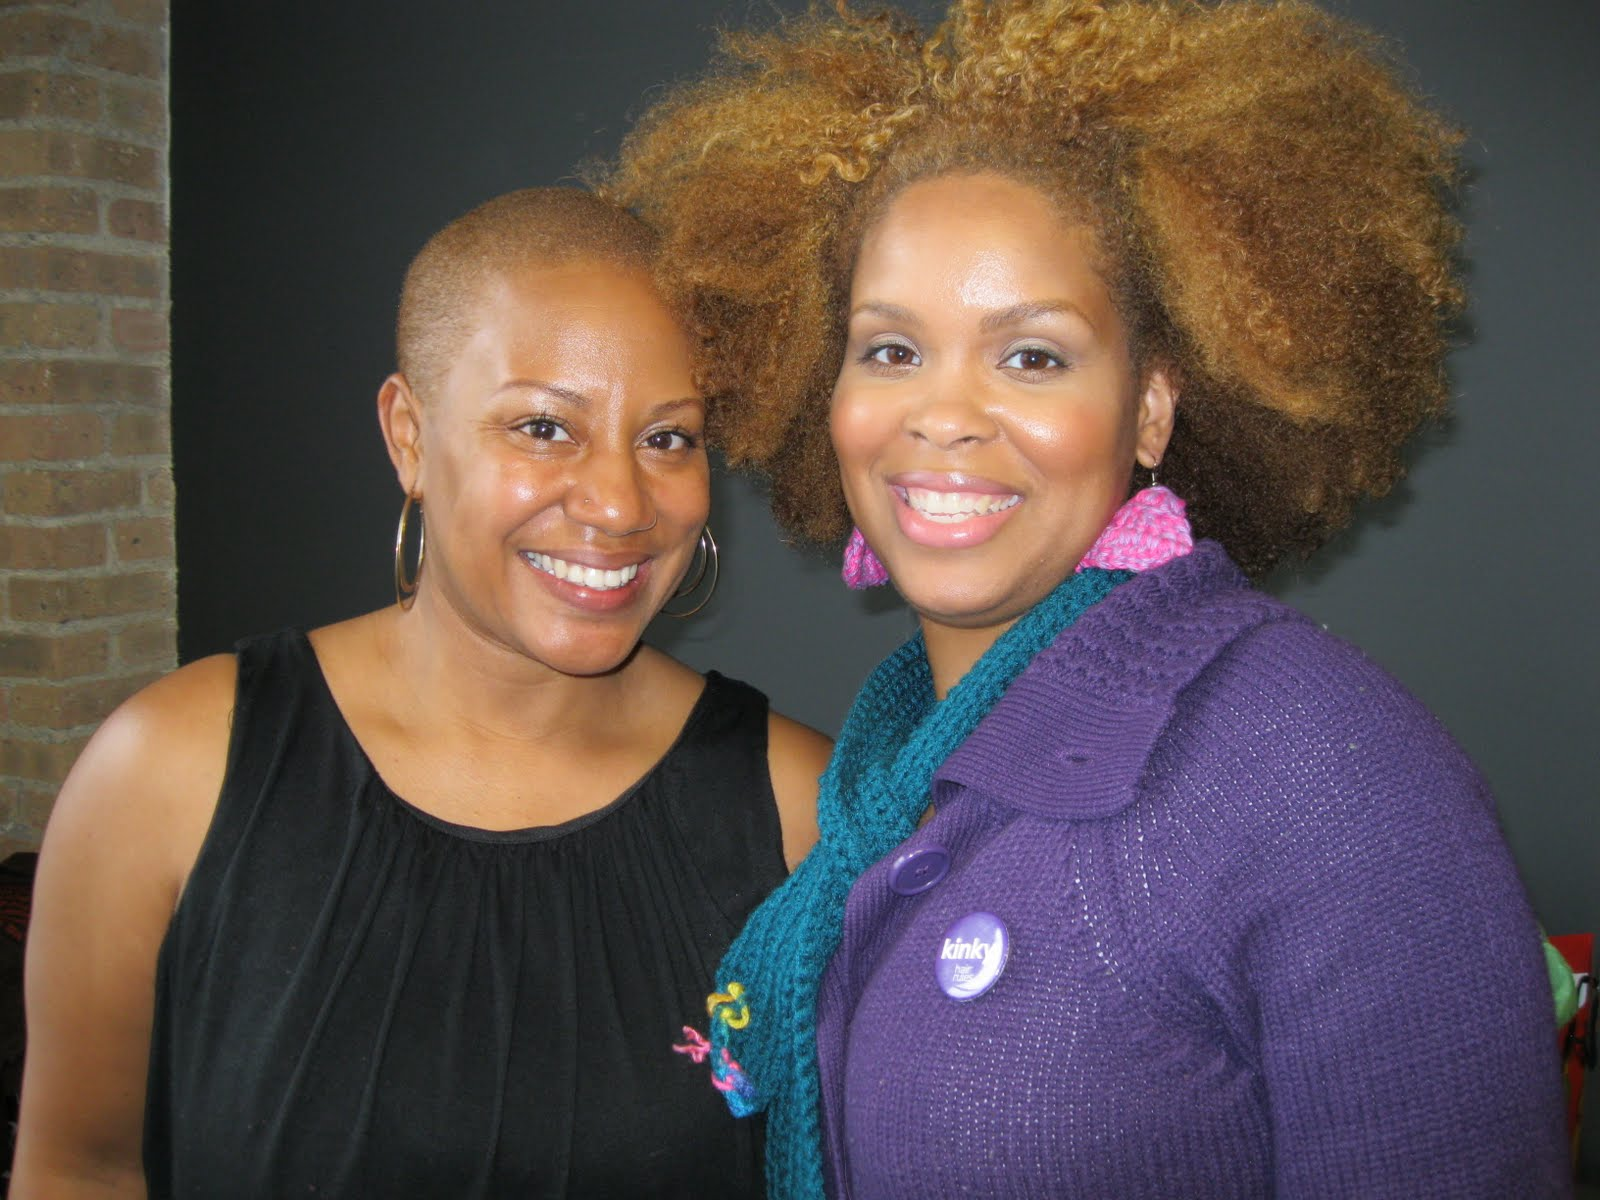 Celebrity natural hair stylist visits chicago rachel o beauty this past weekend i finally got to meet someone i really admire in the natural hair community felicia leatherwood is a celebrity hair stylist some of her m4hsunfo